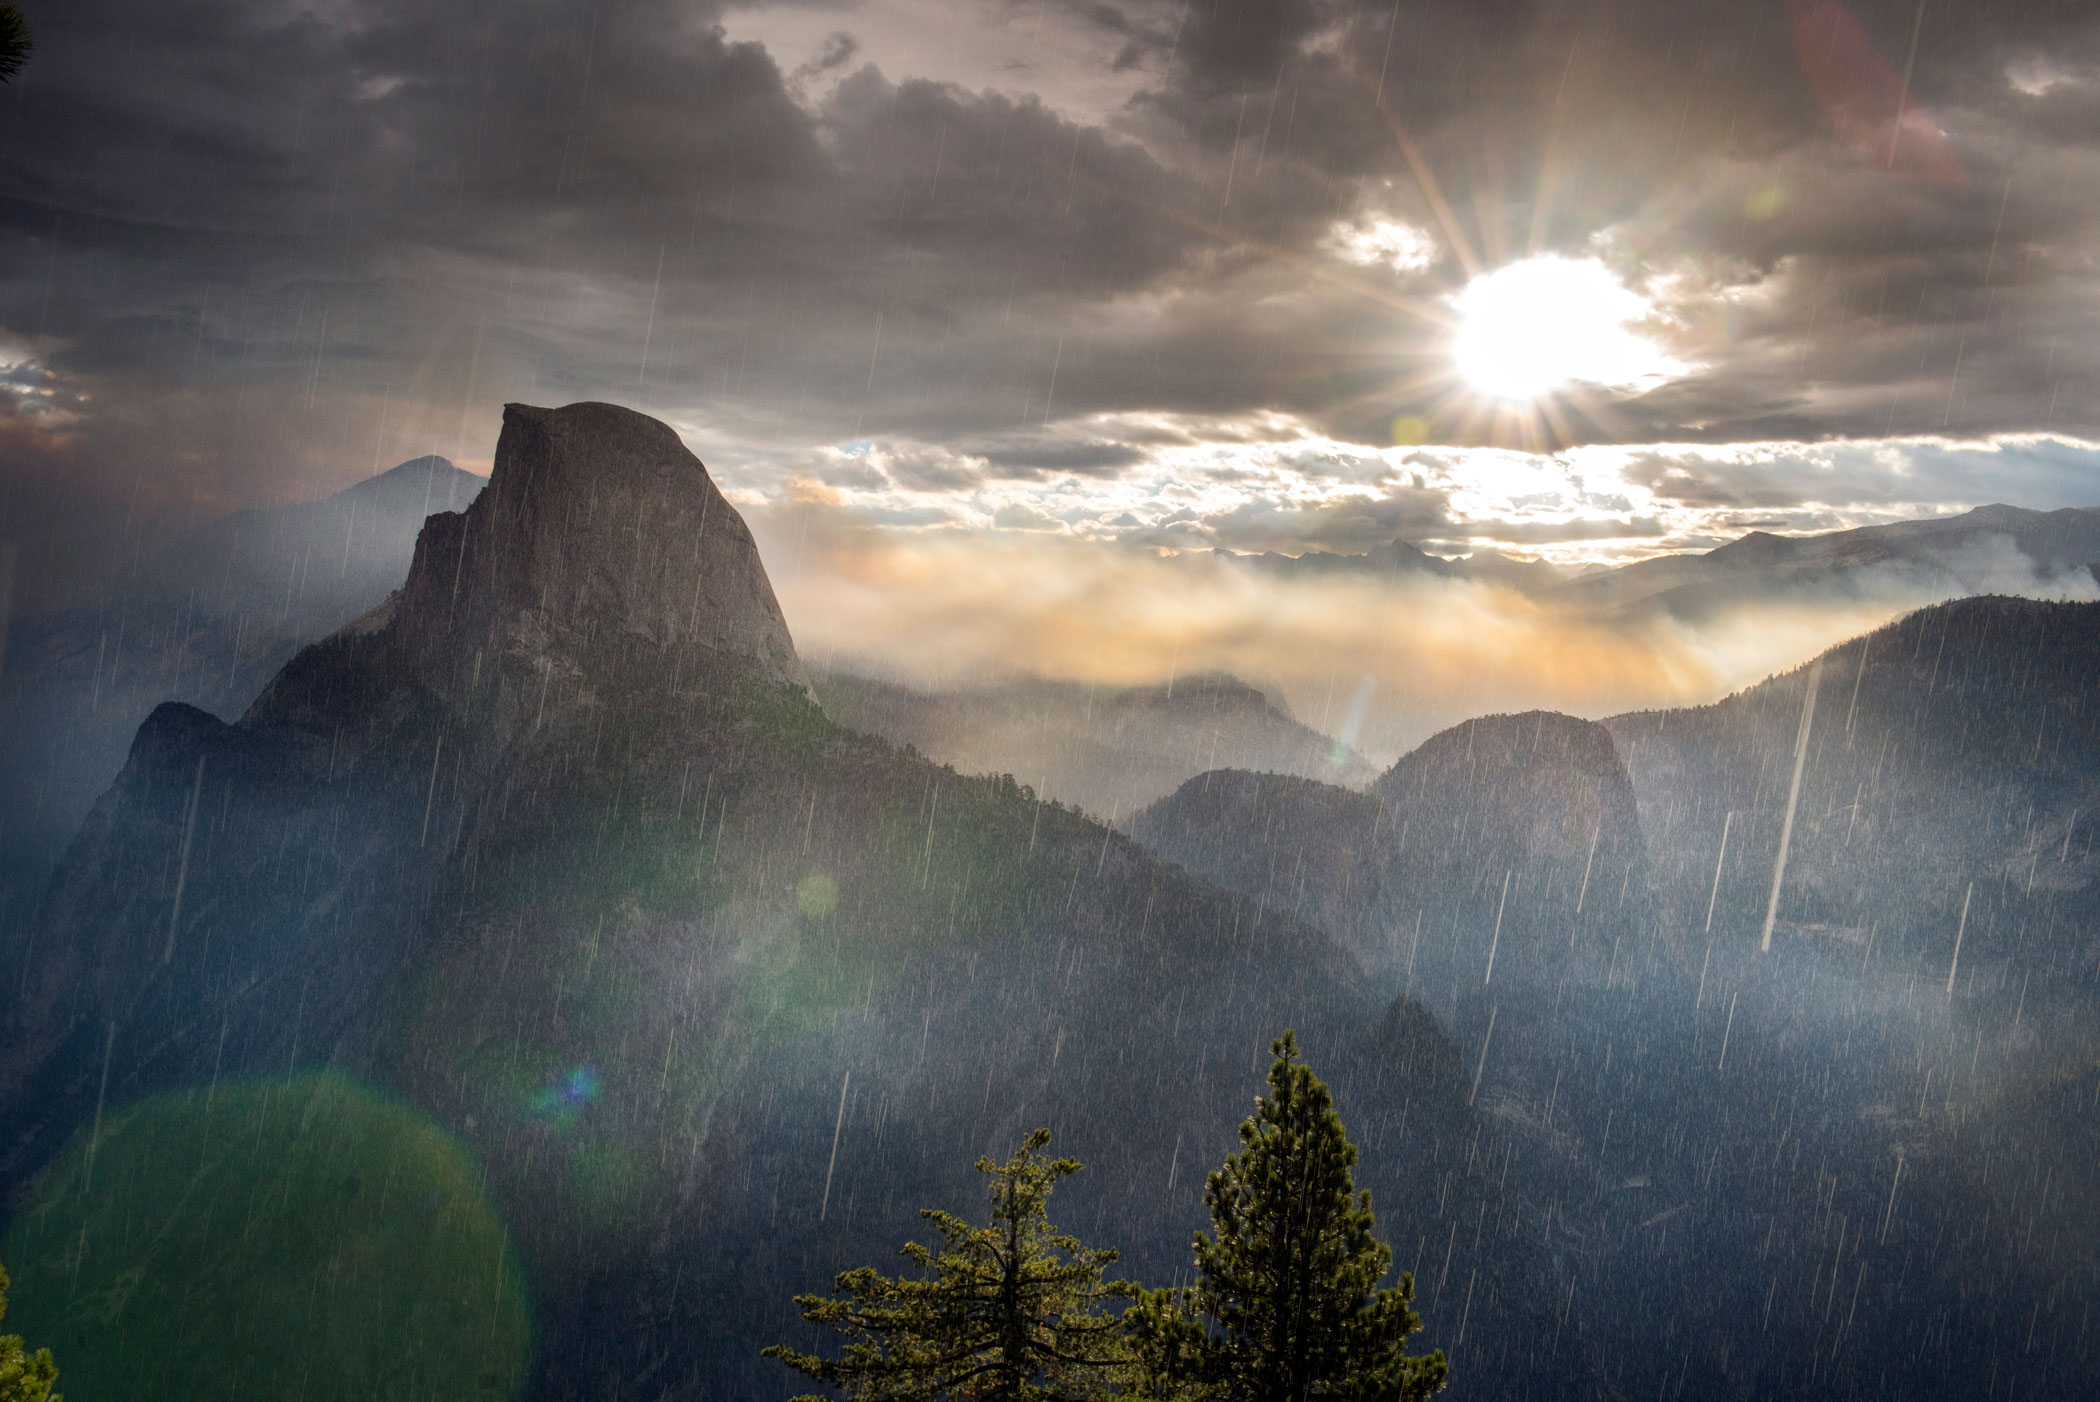 The Meadow Fire burns at dawn near Half Dome in Yosemite National Park early Monday September 8, 2014 as rain moves in from the south. As of Wednesday the fire had burned over 4,500 acres and was 10% contained.